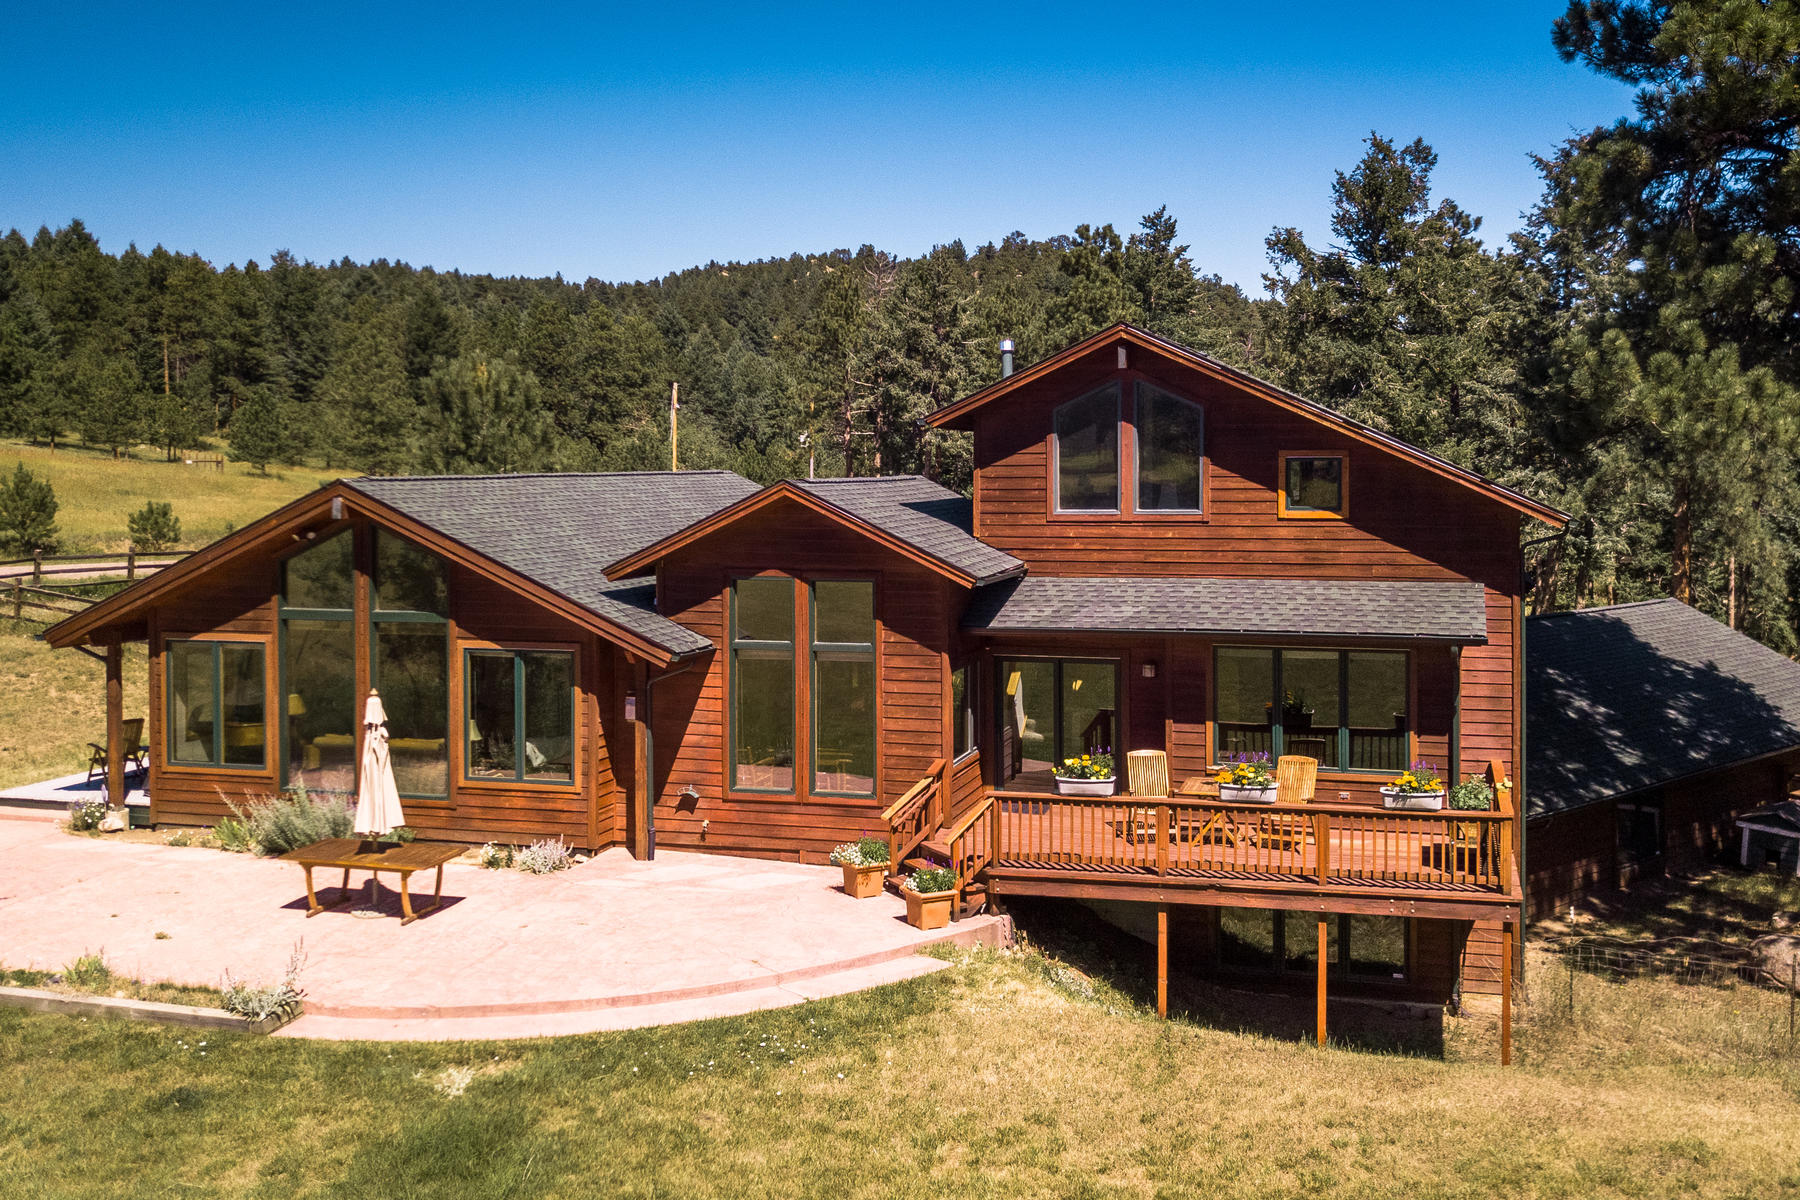 Single Family Home for Active at Privacy & Serenity on 2.1 Picturesque Acres 5092 Snowberry Lane Evergreen, Colorado 80439 United States